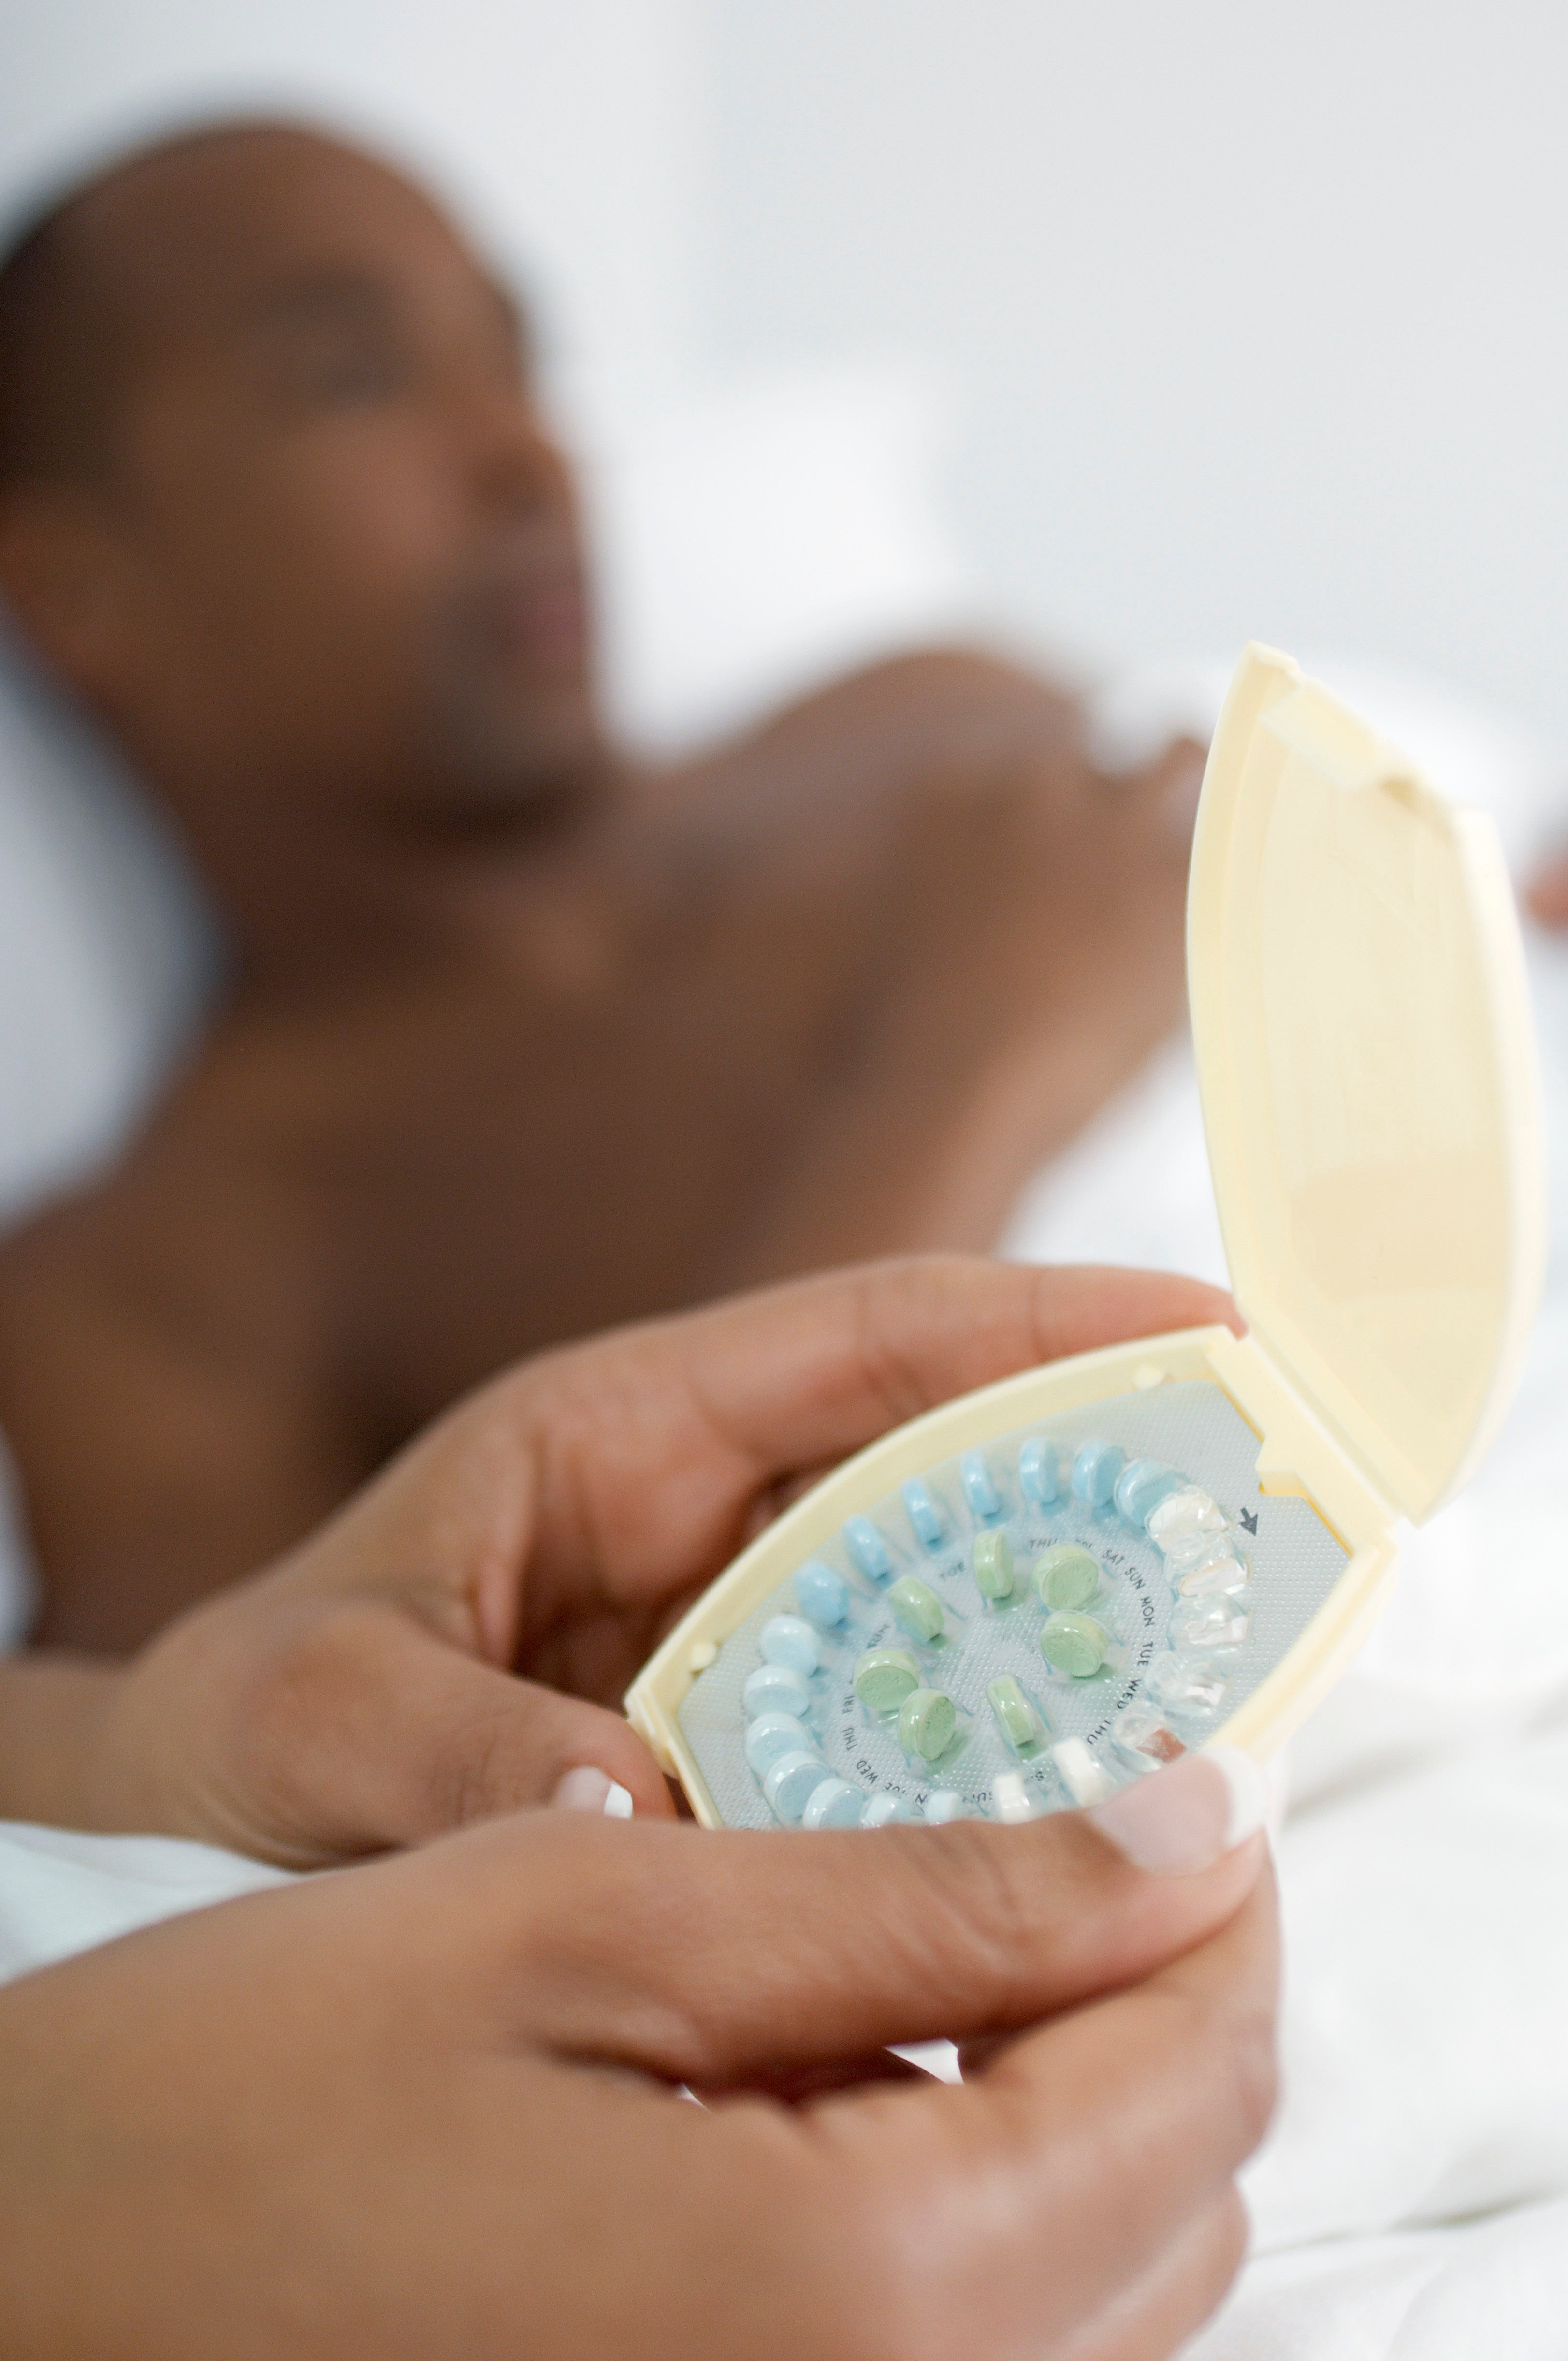 Are You Comfortable Using Long-Acting Birth Control?